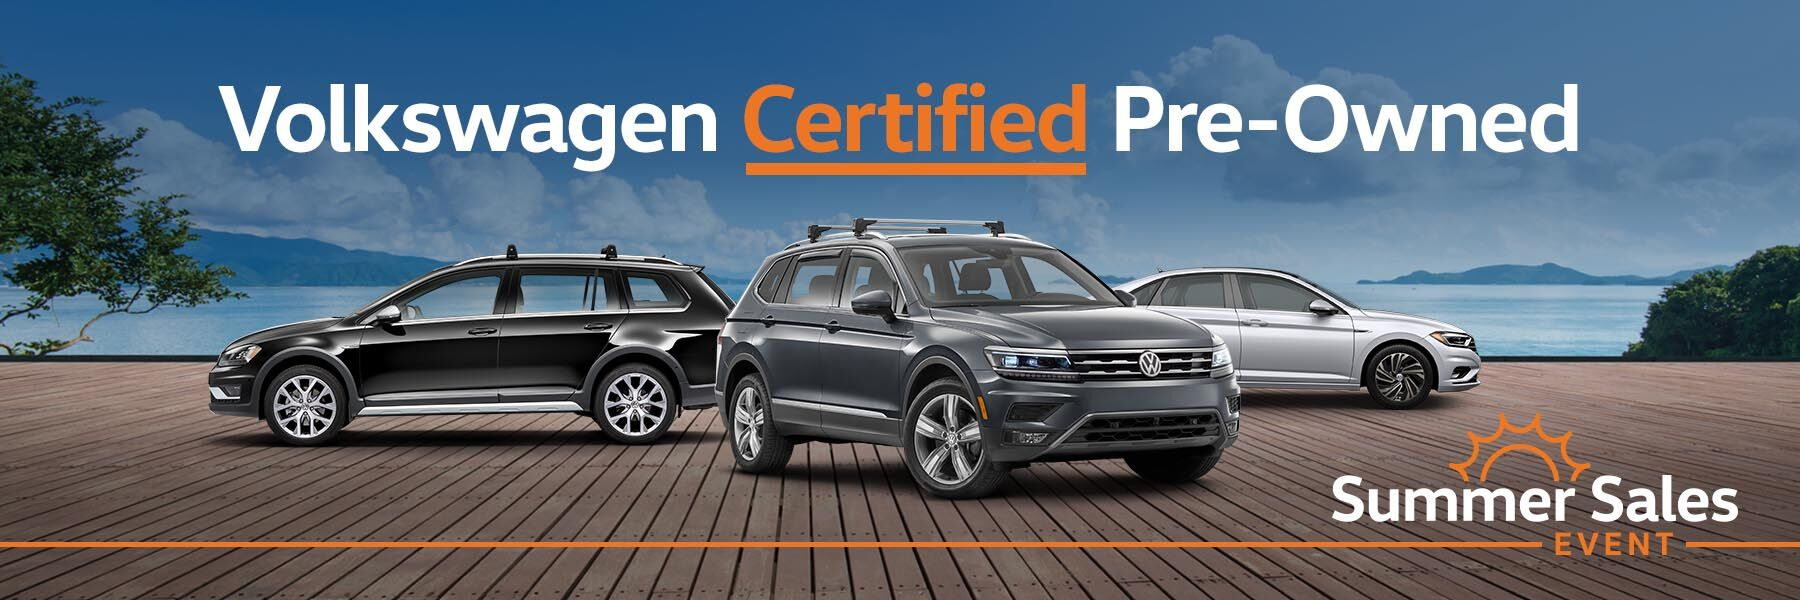 Volkswagen Certified Pre-Owned in Fremont, CA